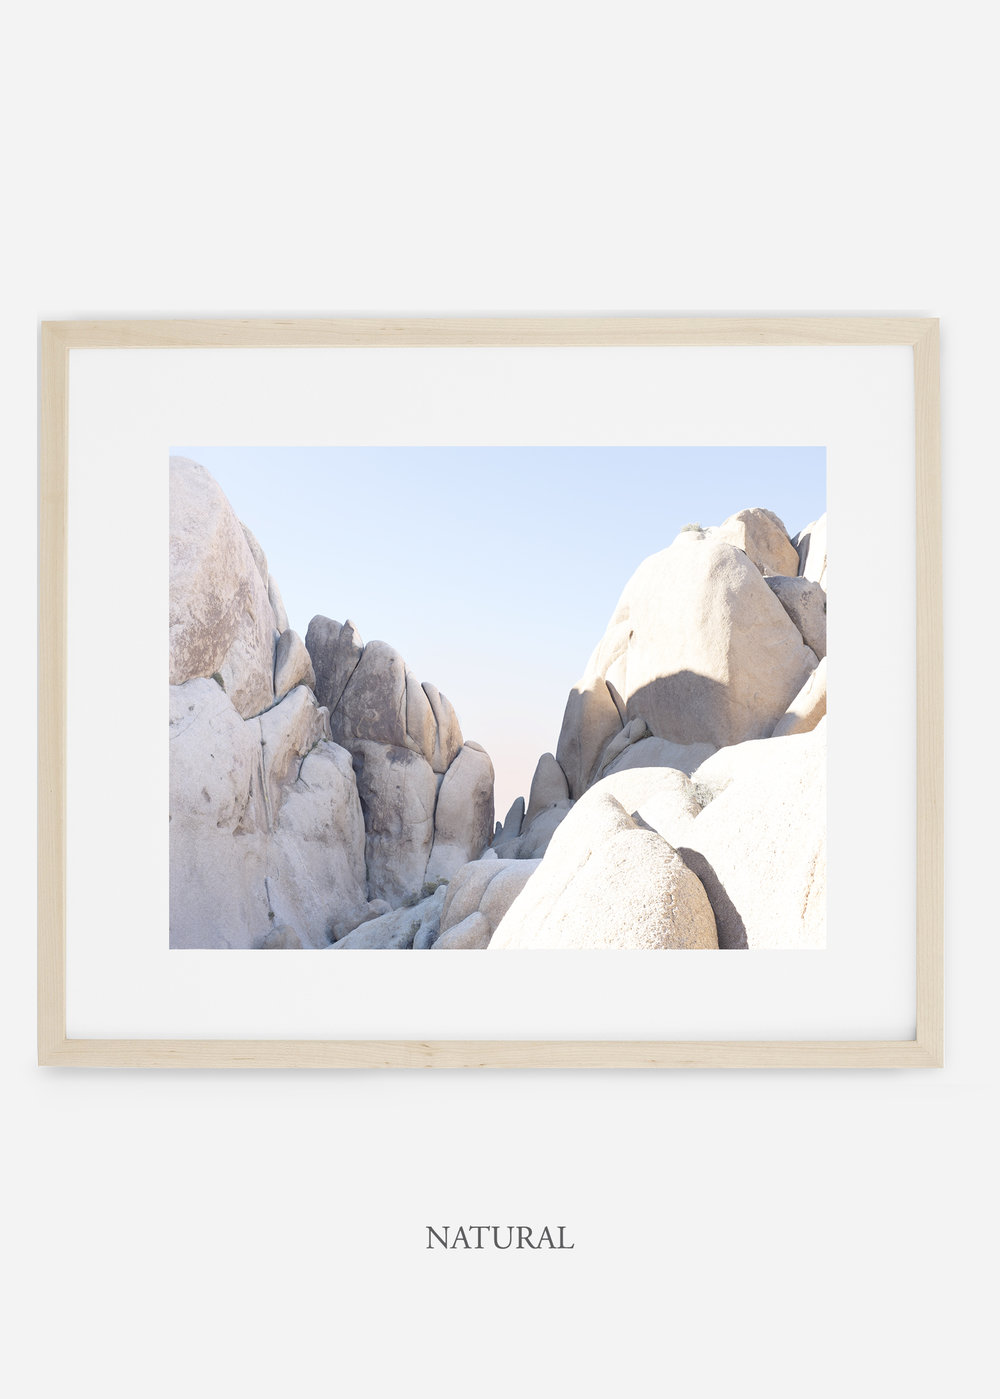 WilderCalifornia_natural_JoshuaTree_No.18_interiordesign_prints_art.jpg